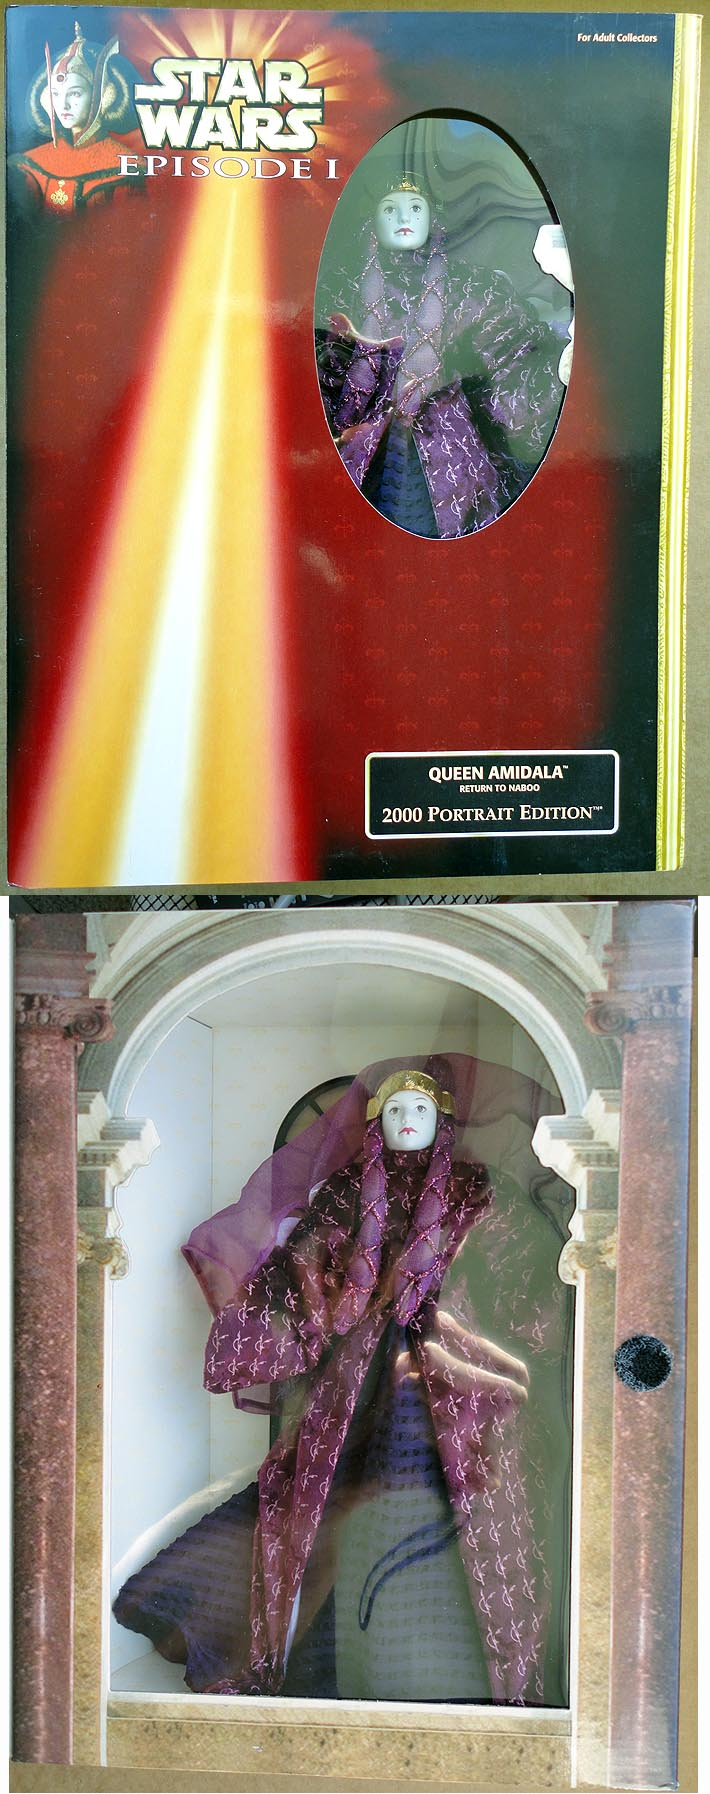 Star Wars Ep 1 - 2000 Portrait Ed Queen Amidala Return To Naboo